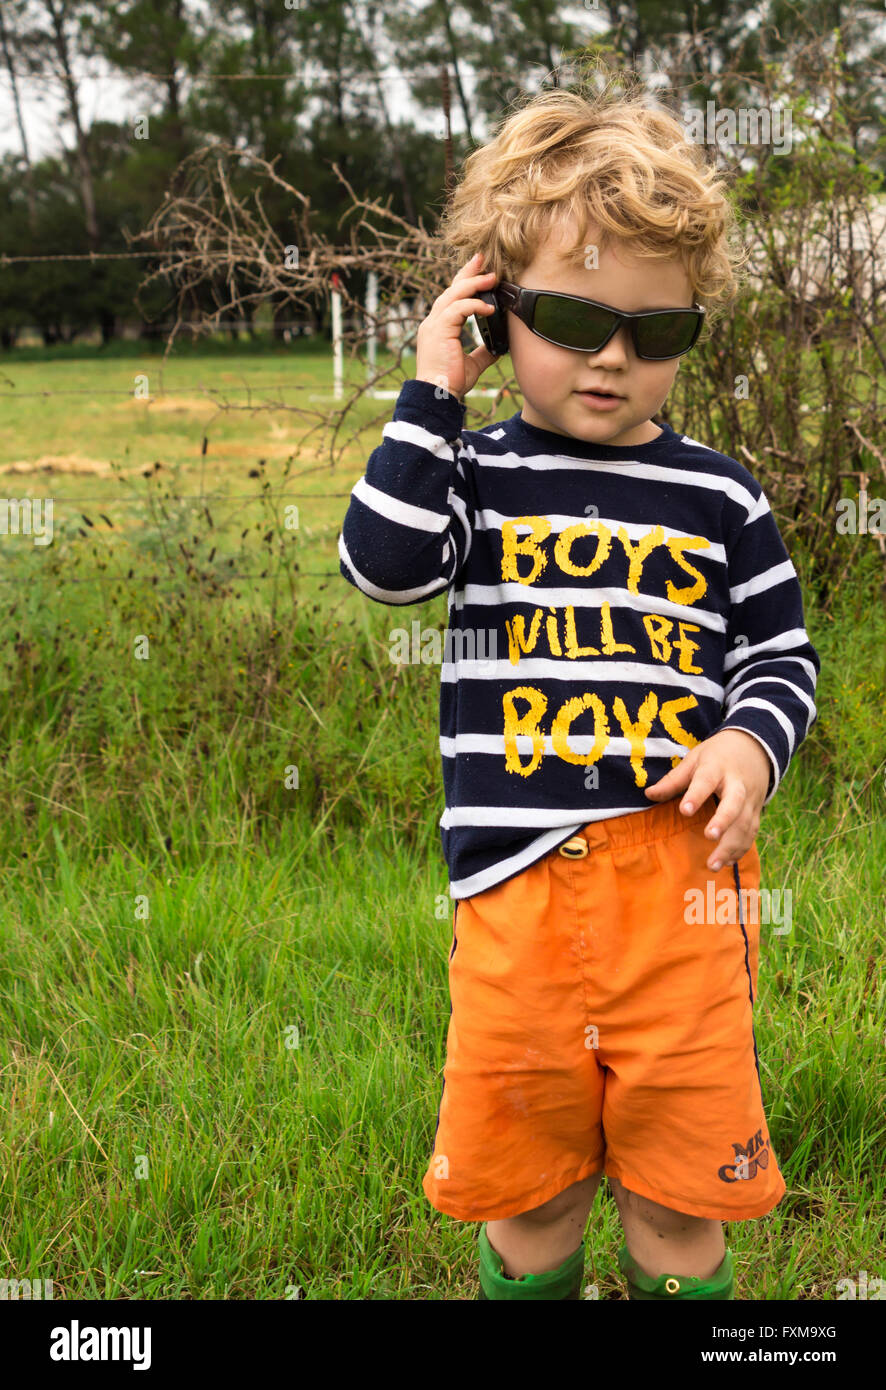 Photo of young boy with sunglasses talking to a camera lens cap pretending it is a mobile phone in a rural setting Stock Photo